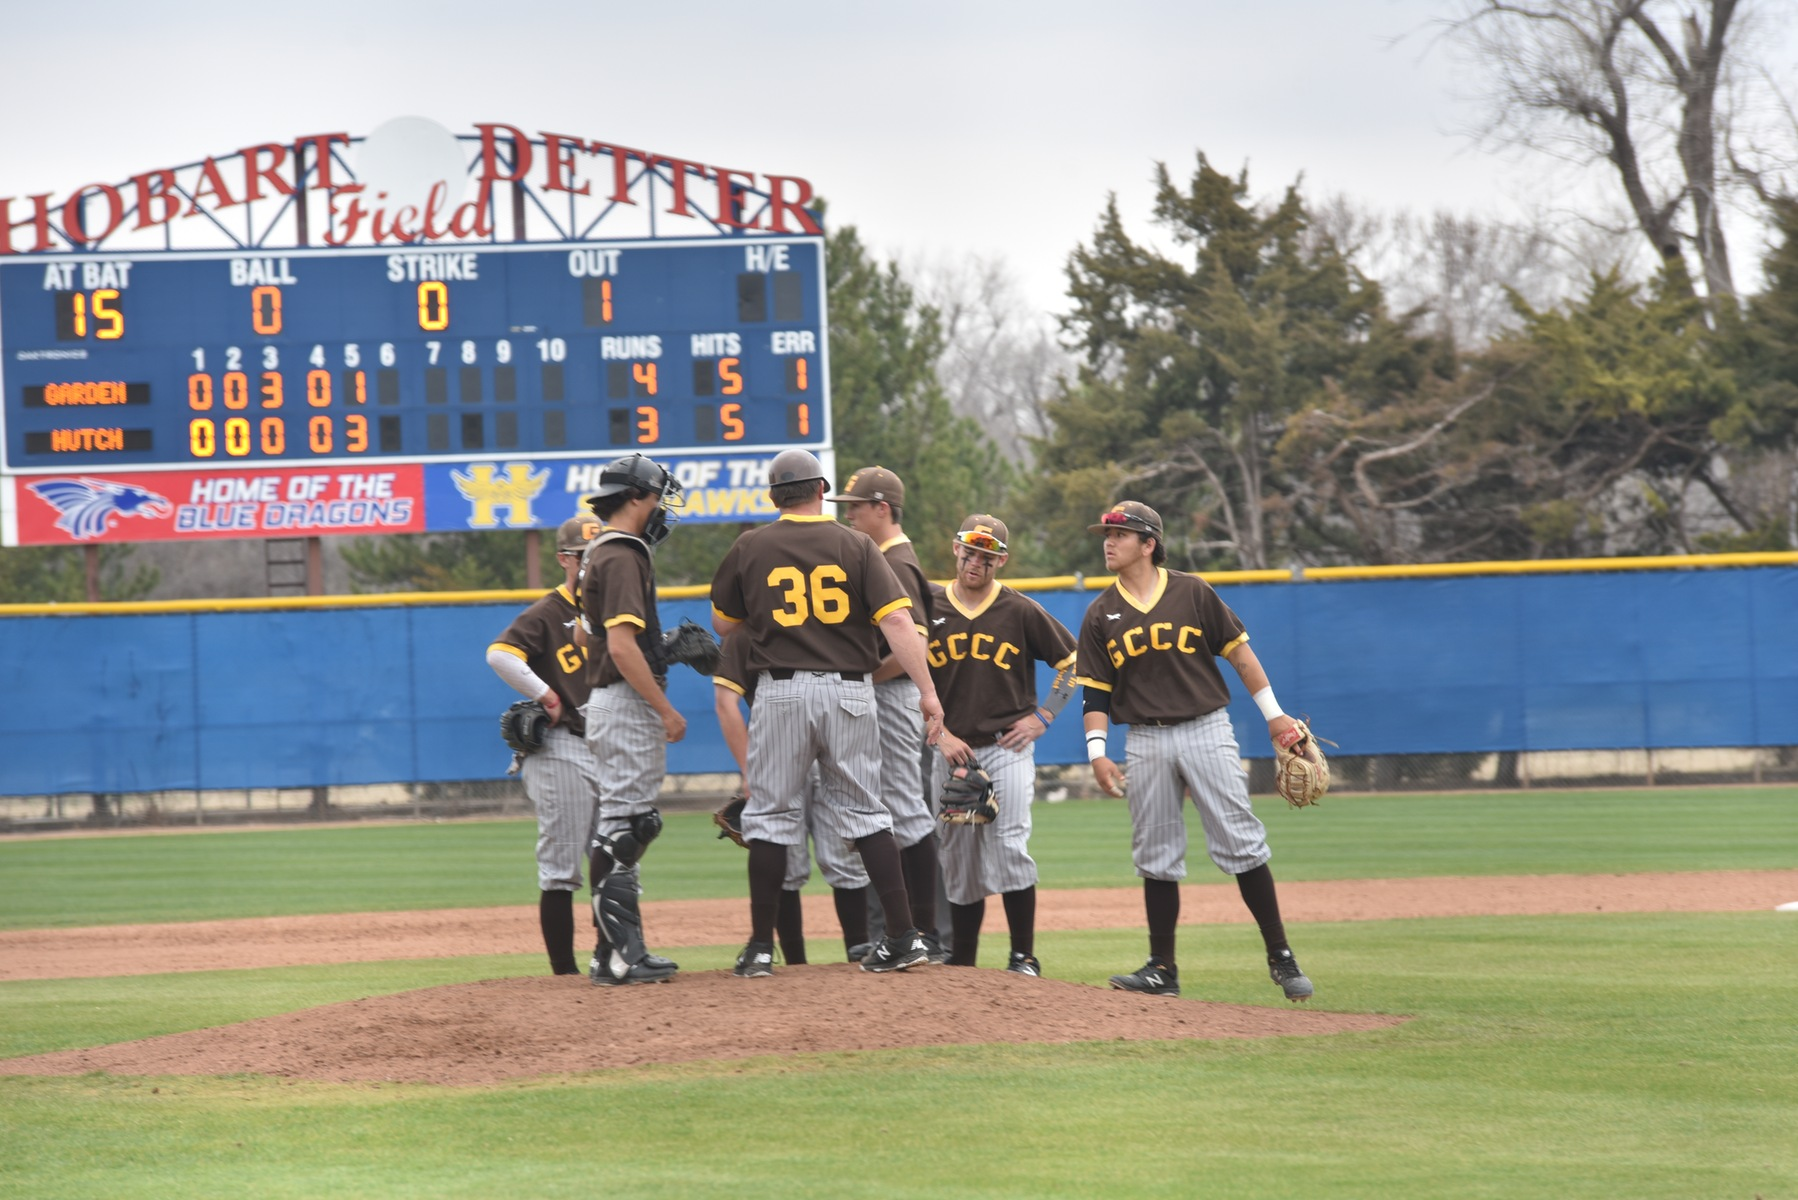 Broncbusters lose to Hutch on walk-off homer